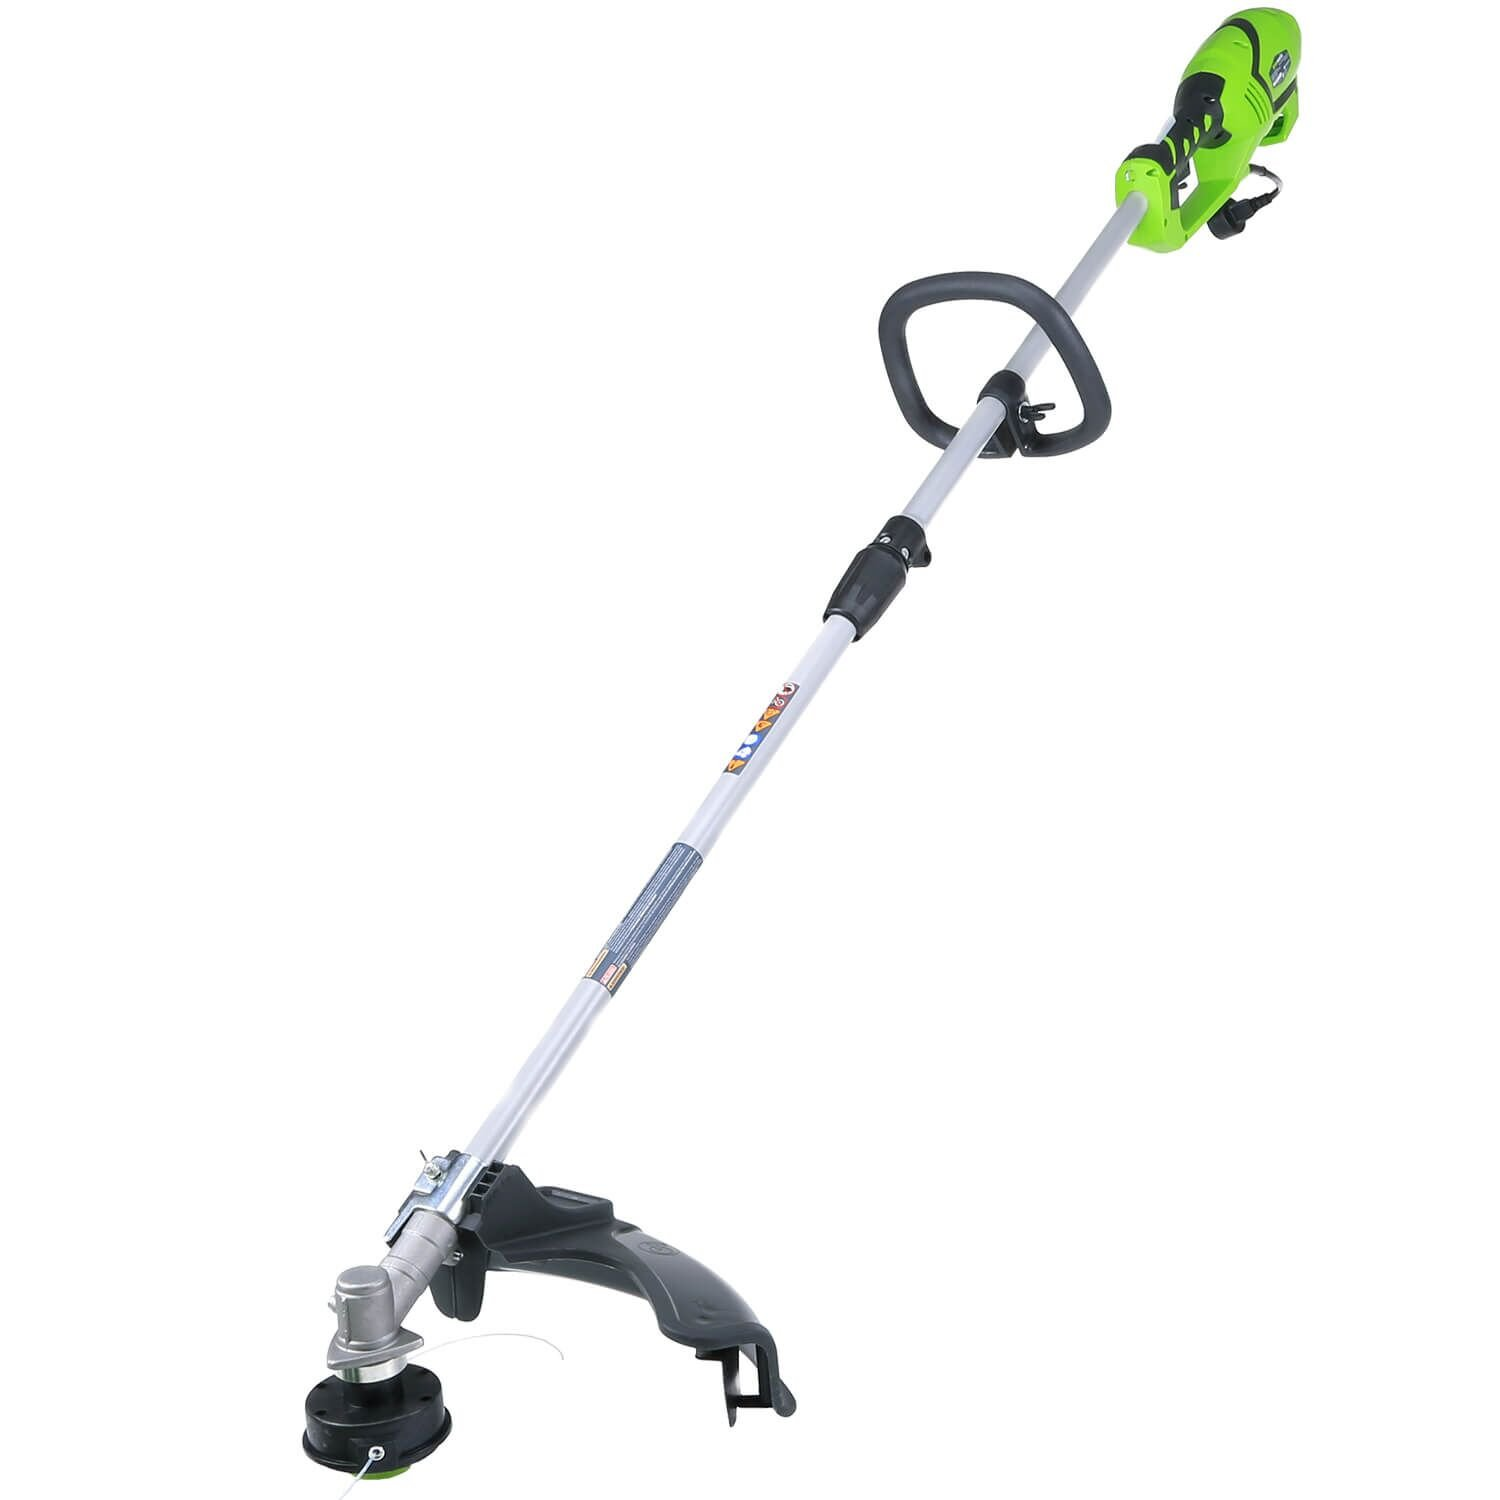 Greenworks 18-Inch 10 Amp Corded String Trimmer (Attachment Capable) 21142 by Greenworks